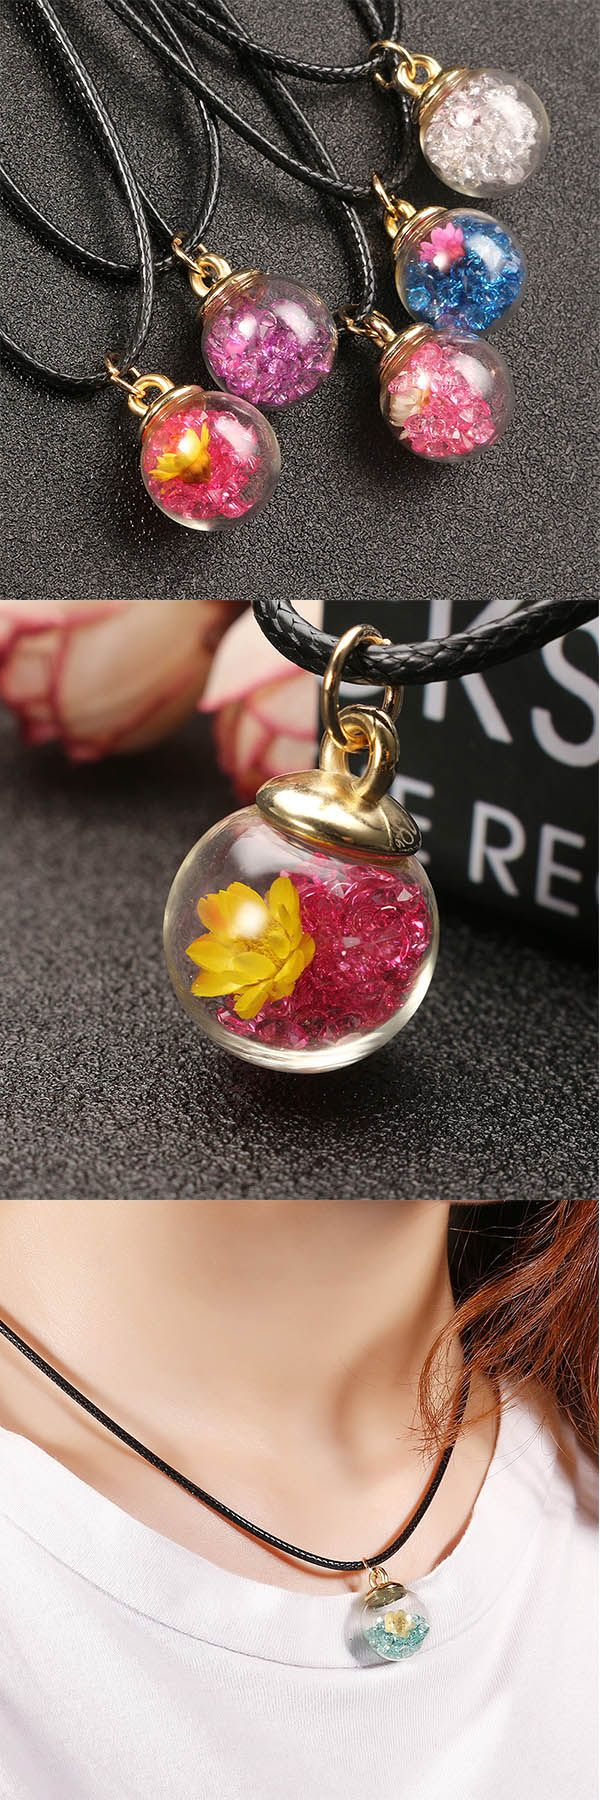 US$3.99 + Free shipping. necklace, necklace and bracelet,  necklace chain, necklaces for women. Main Color: purple, lake blue, rose red, pink, white, blue.